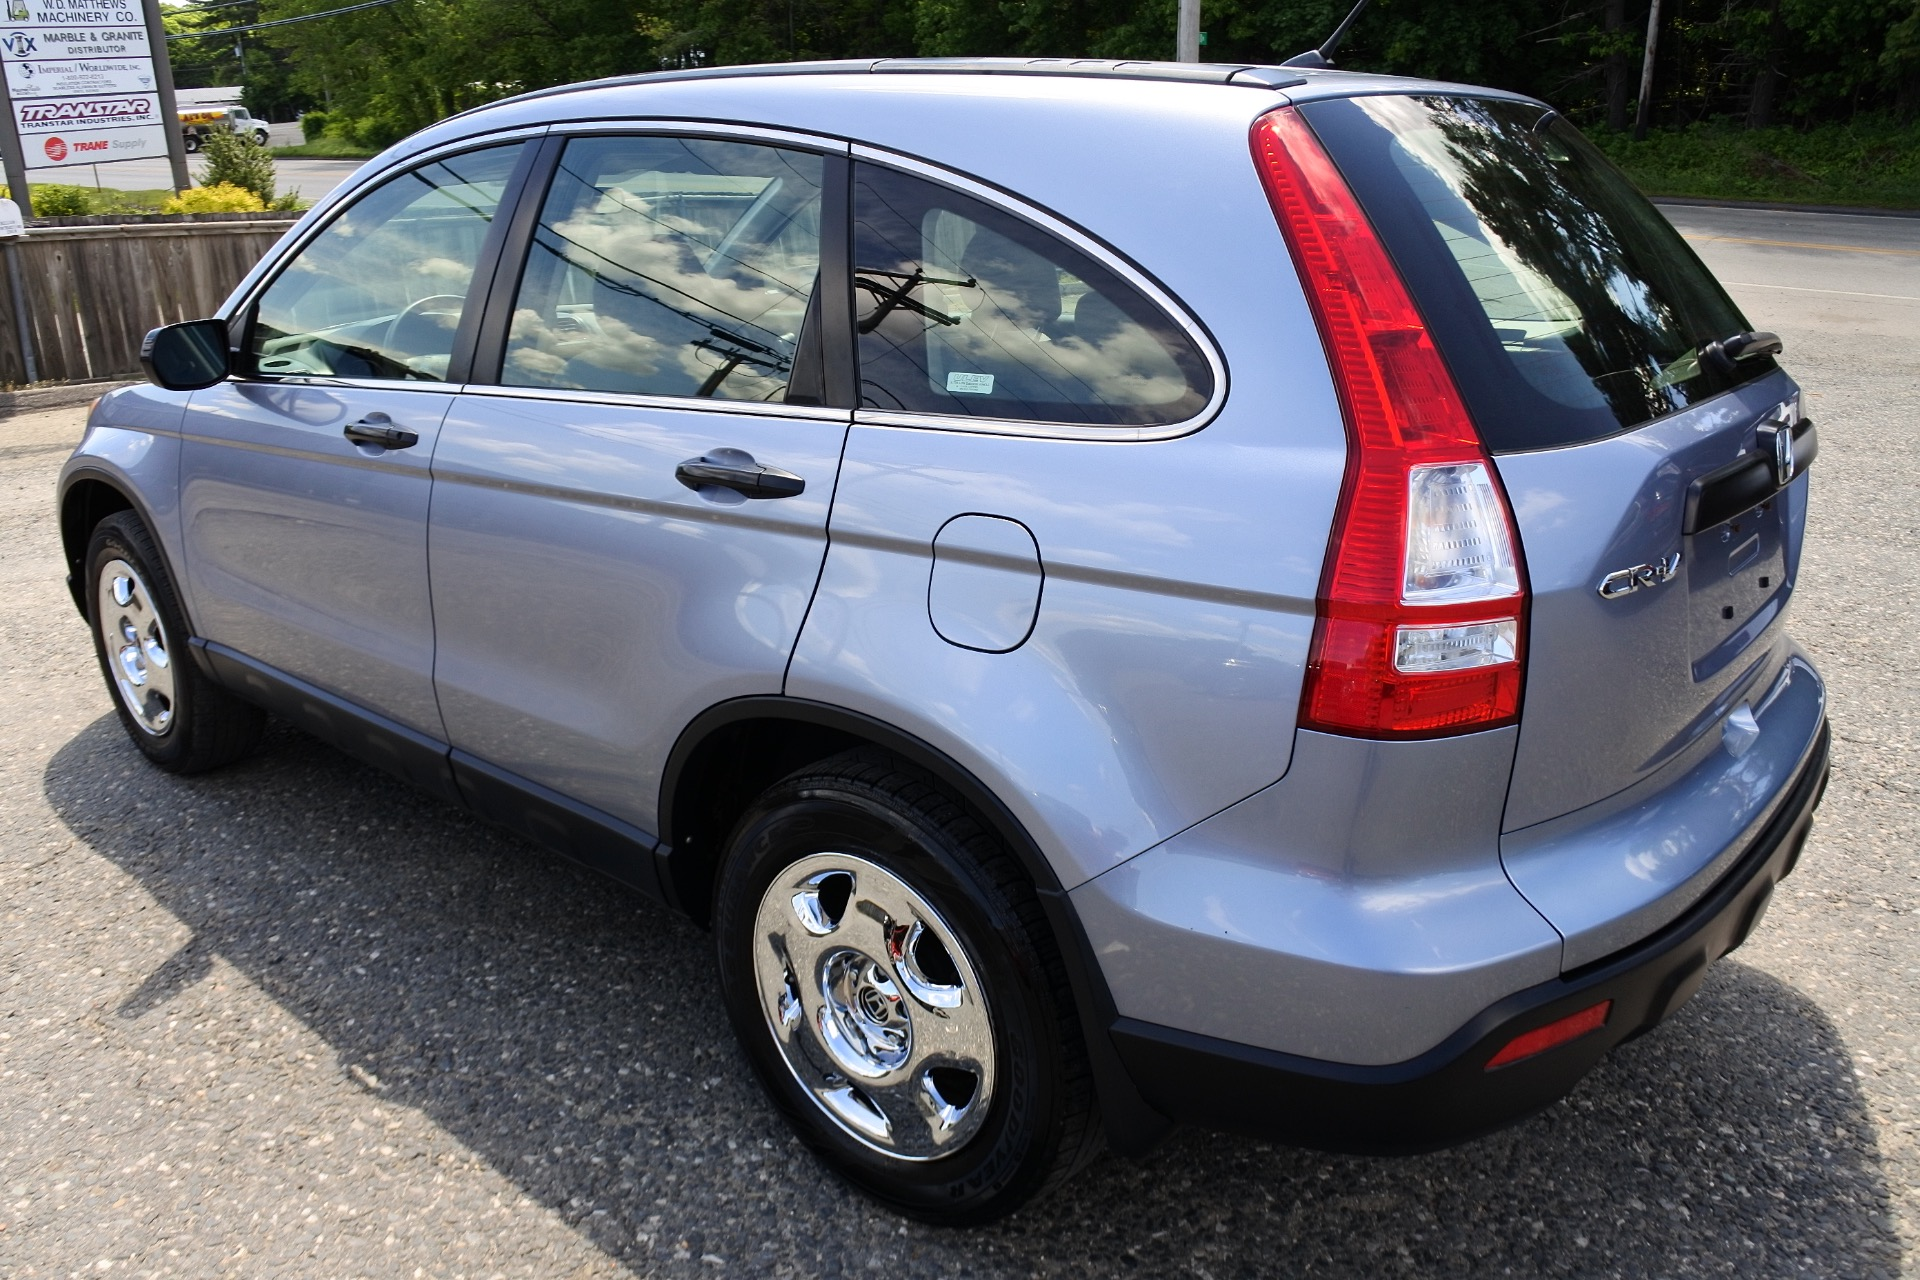 Used 2008 Honda Cr-v 4WD 5dr LX Used 2008 Honda Cr-v 4WD 5dr LX for sale  at Metro West Motorcars LLC in Shrewsbury MA 3